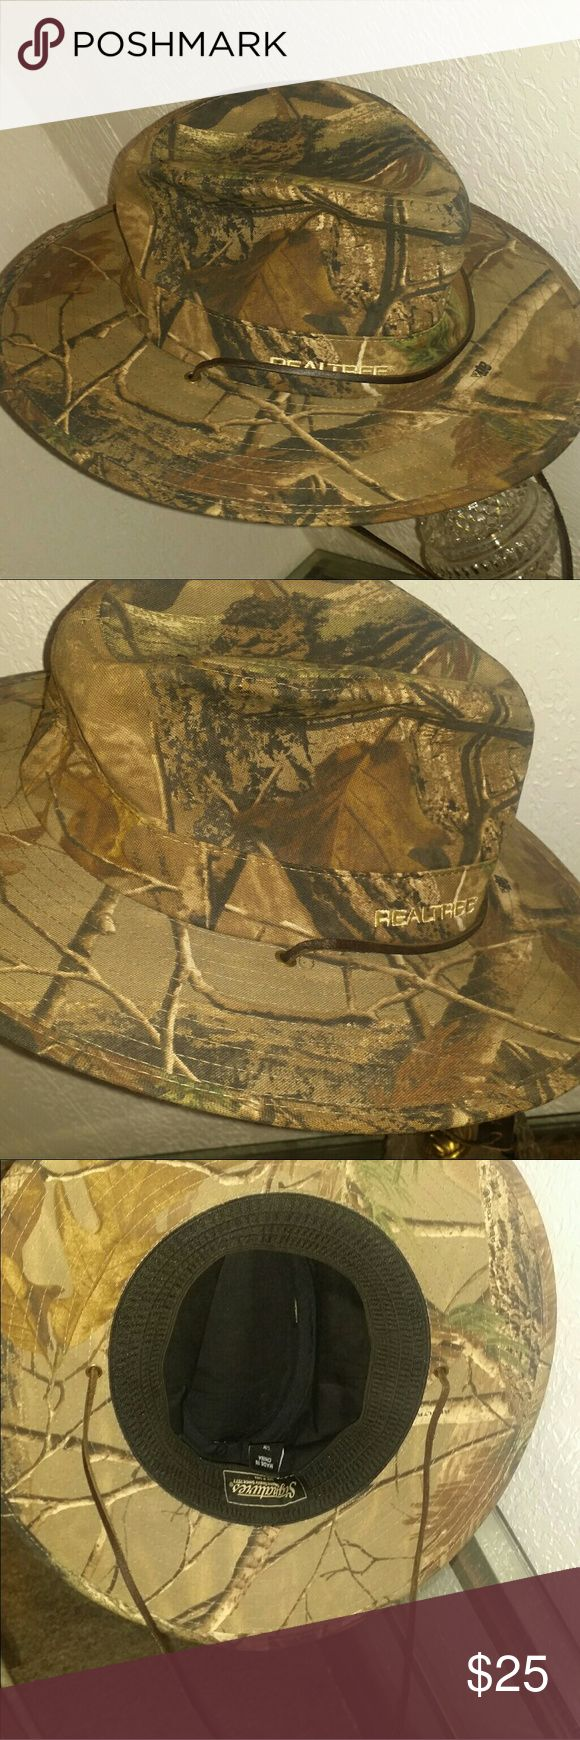 Selling this Men's real tree hat camouflaged fedora on Poshmark! My username is: frederick80. #shopmycloset #poshmark #fashion #shopping #style #forsale #real tree  #Other